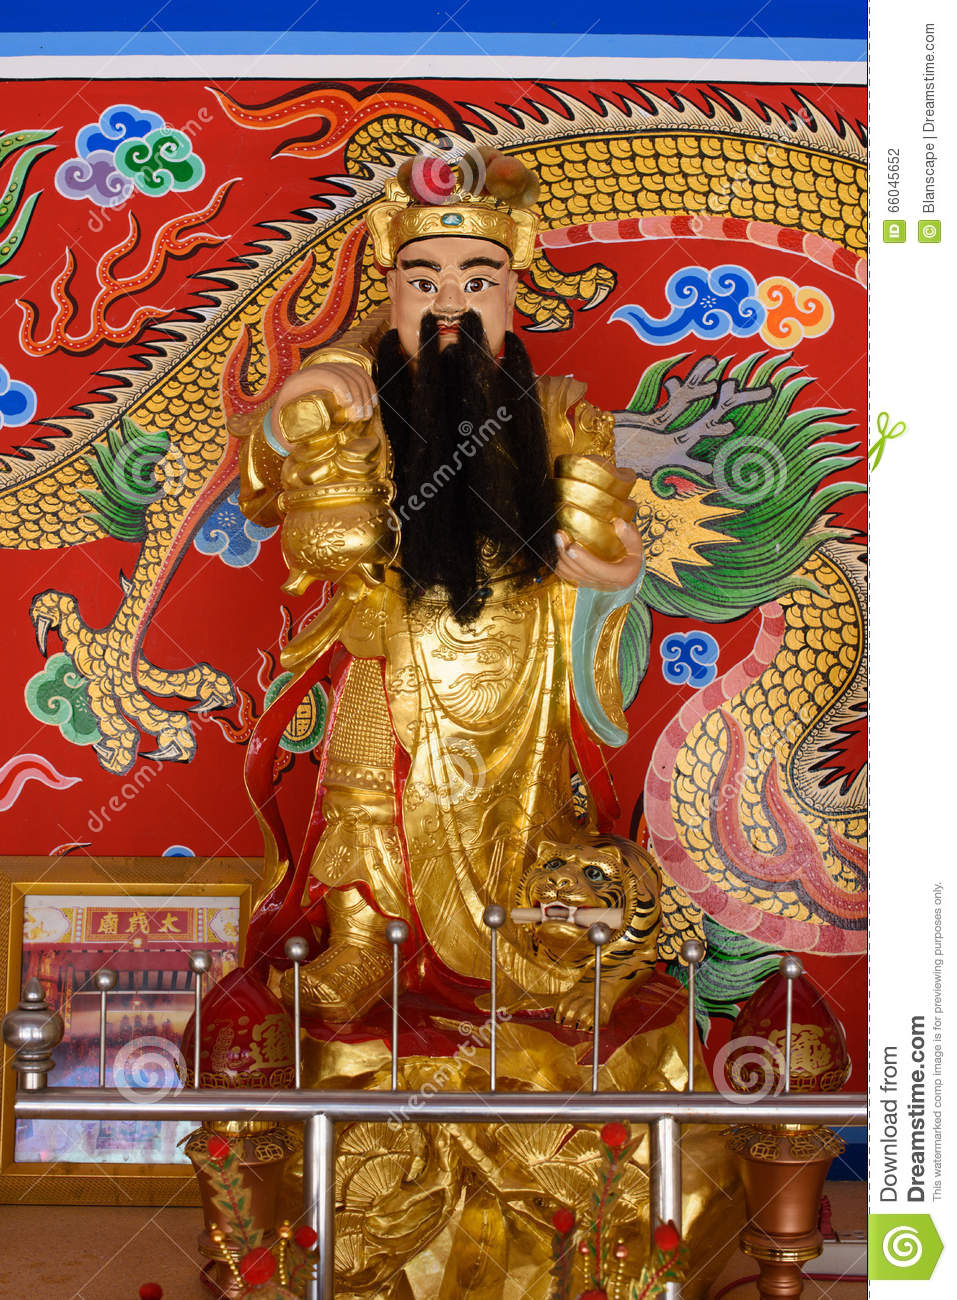 Chinese God of wealth rich and prosperity